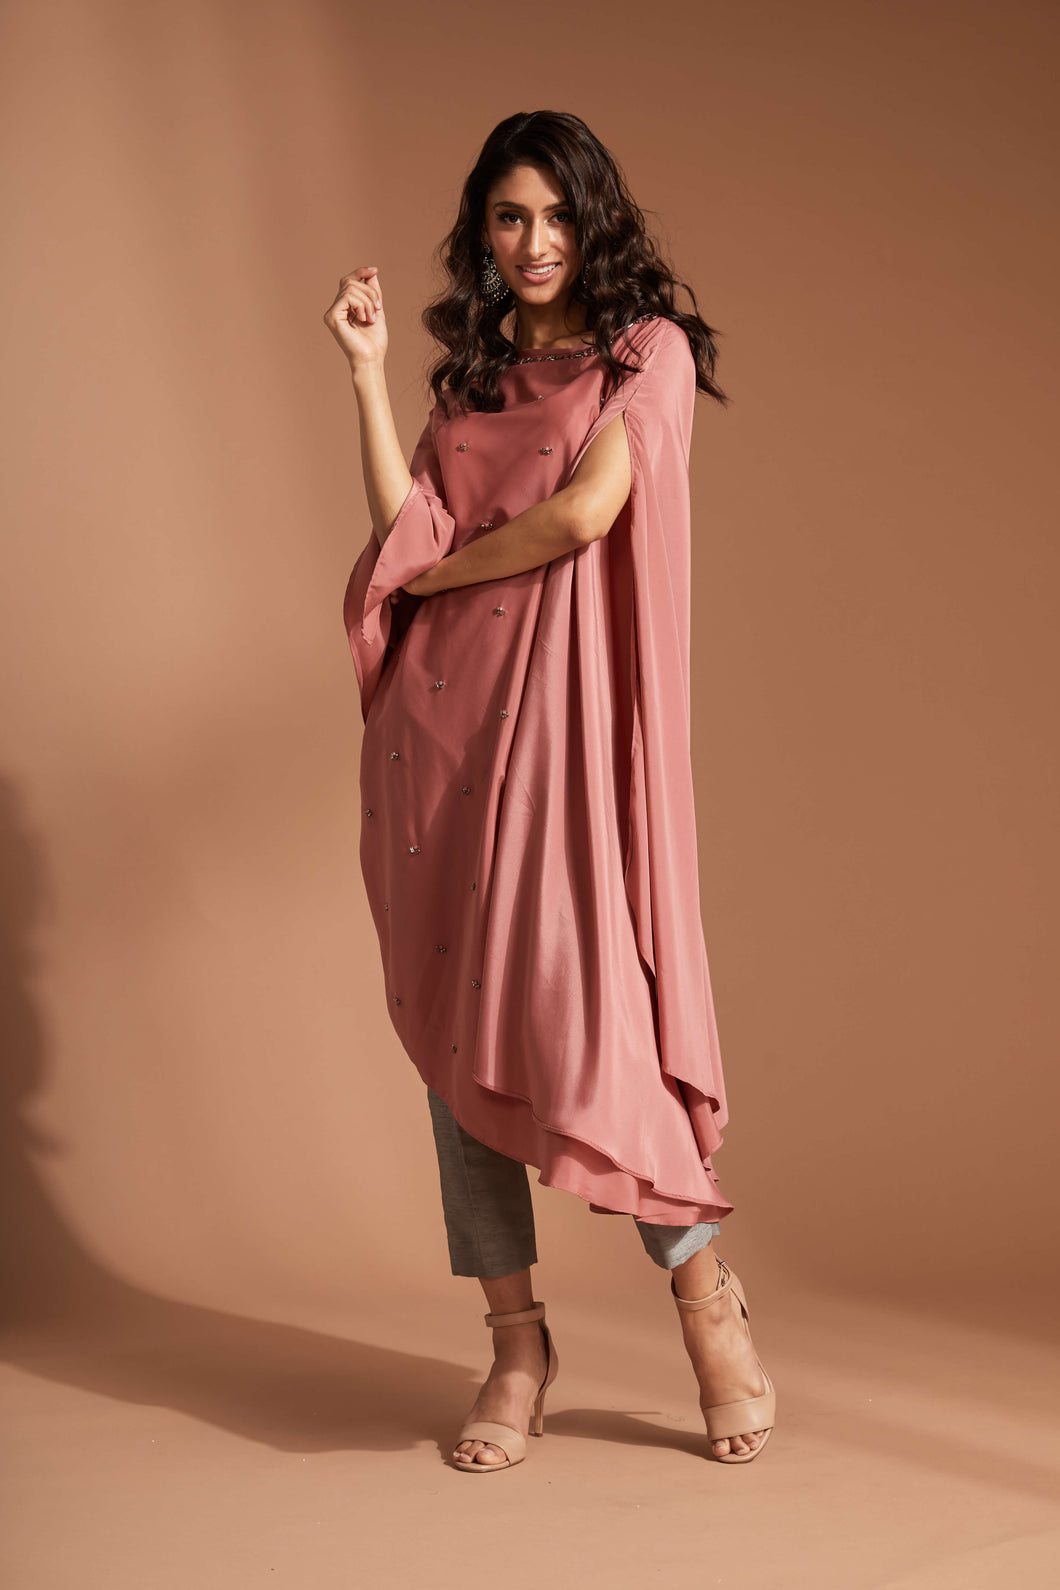 Pink boat neck flowy blouse with contrast cigarette pants